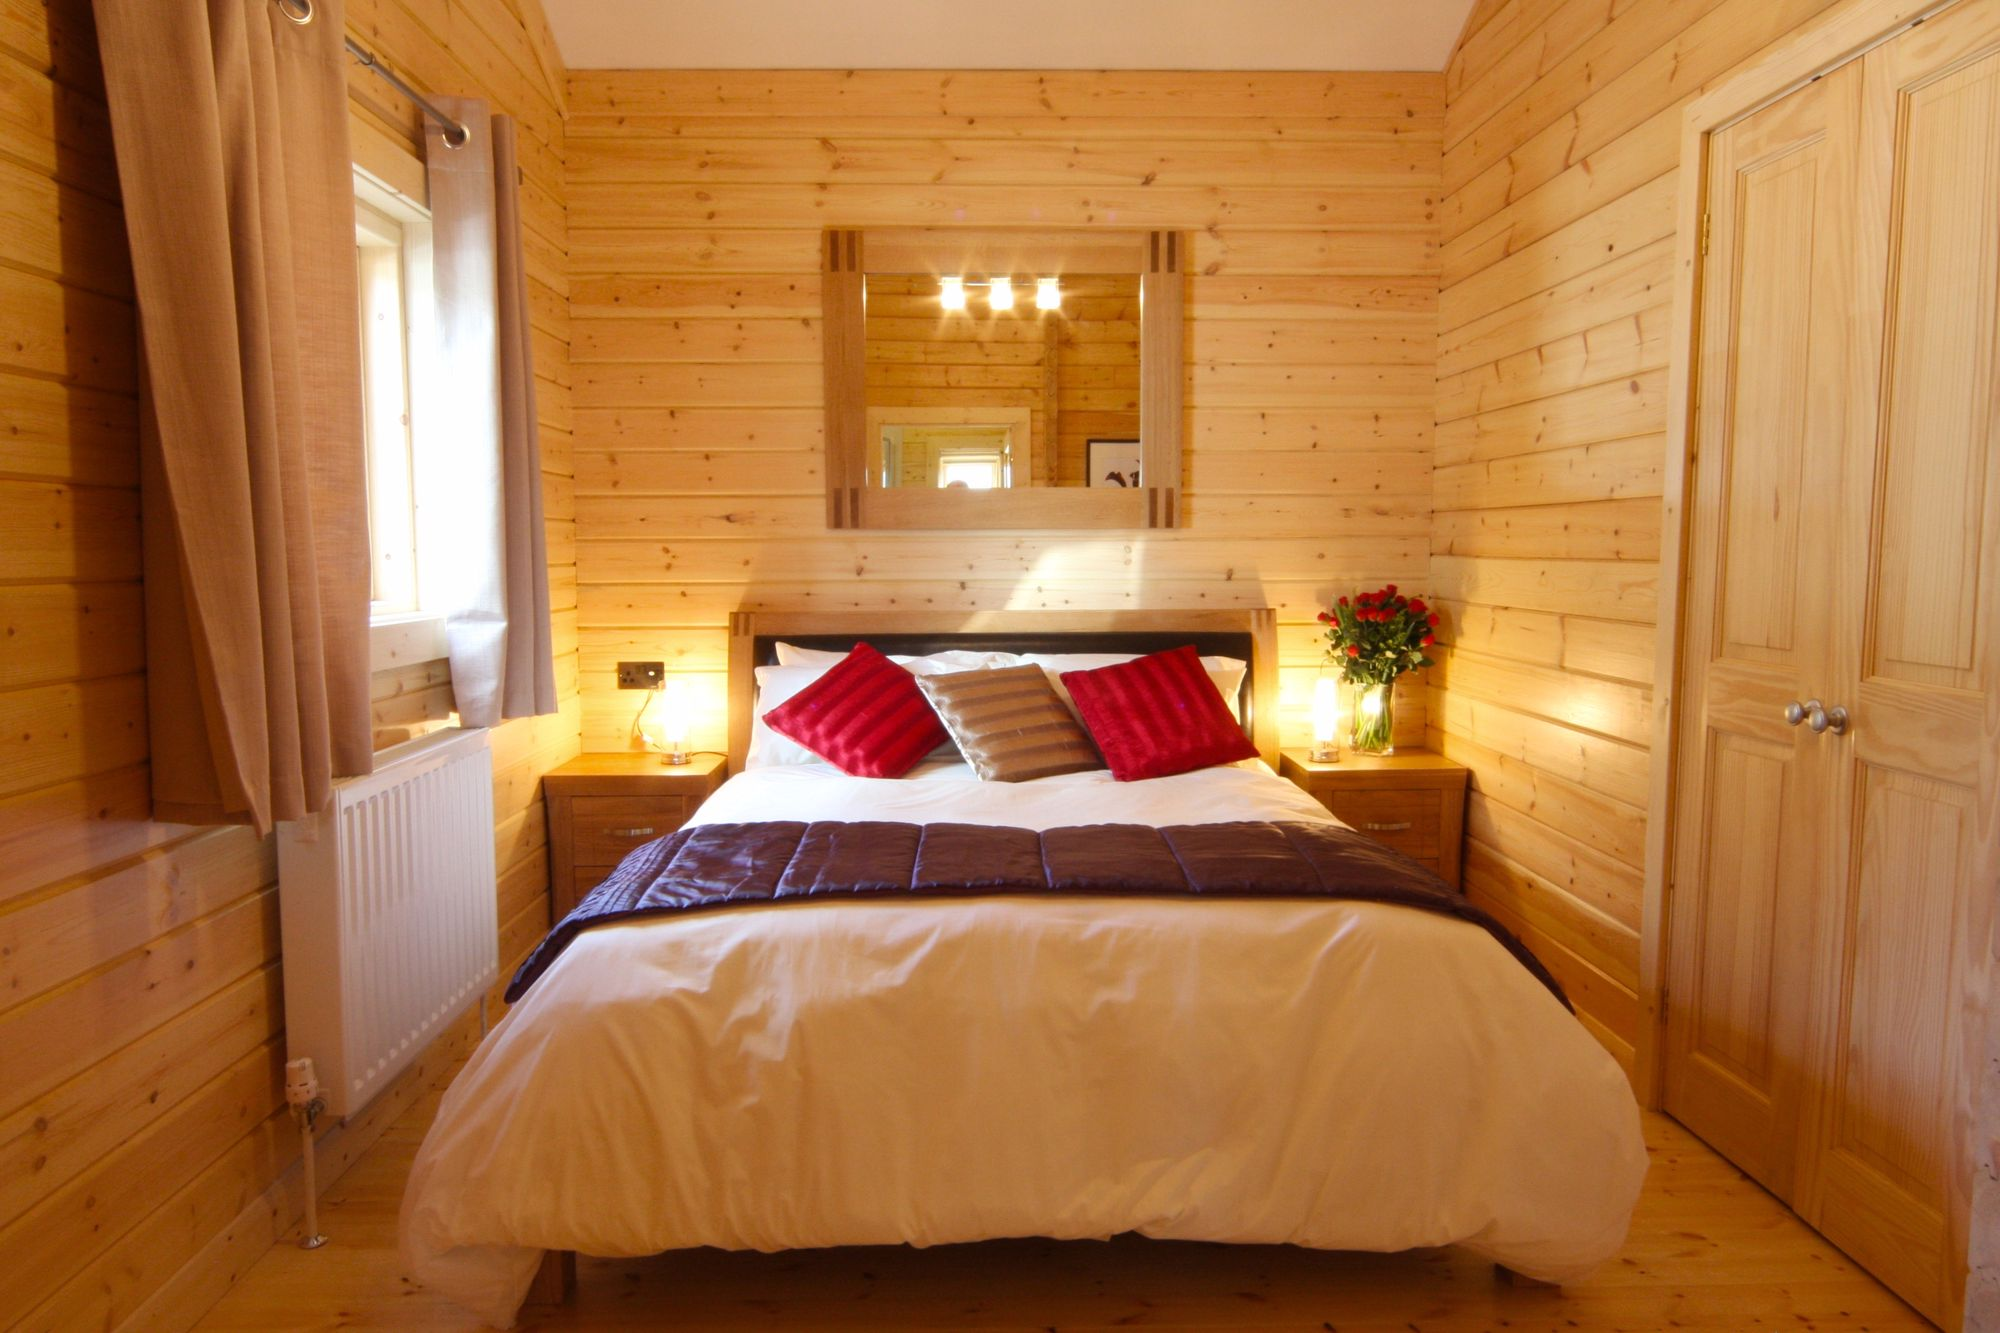 Self-Catering in Richmond holidays at Cool Places